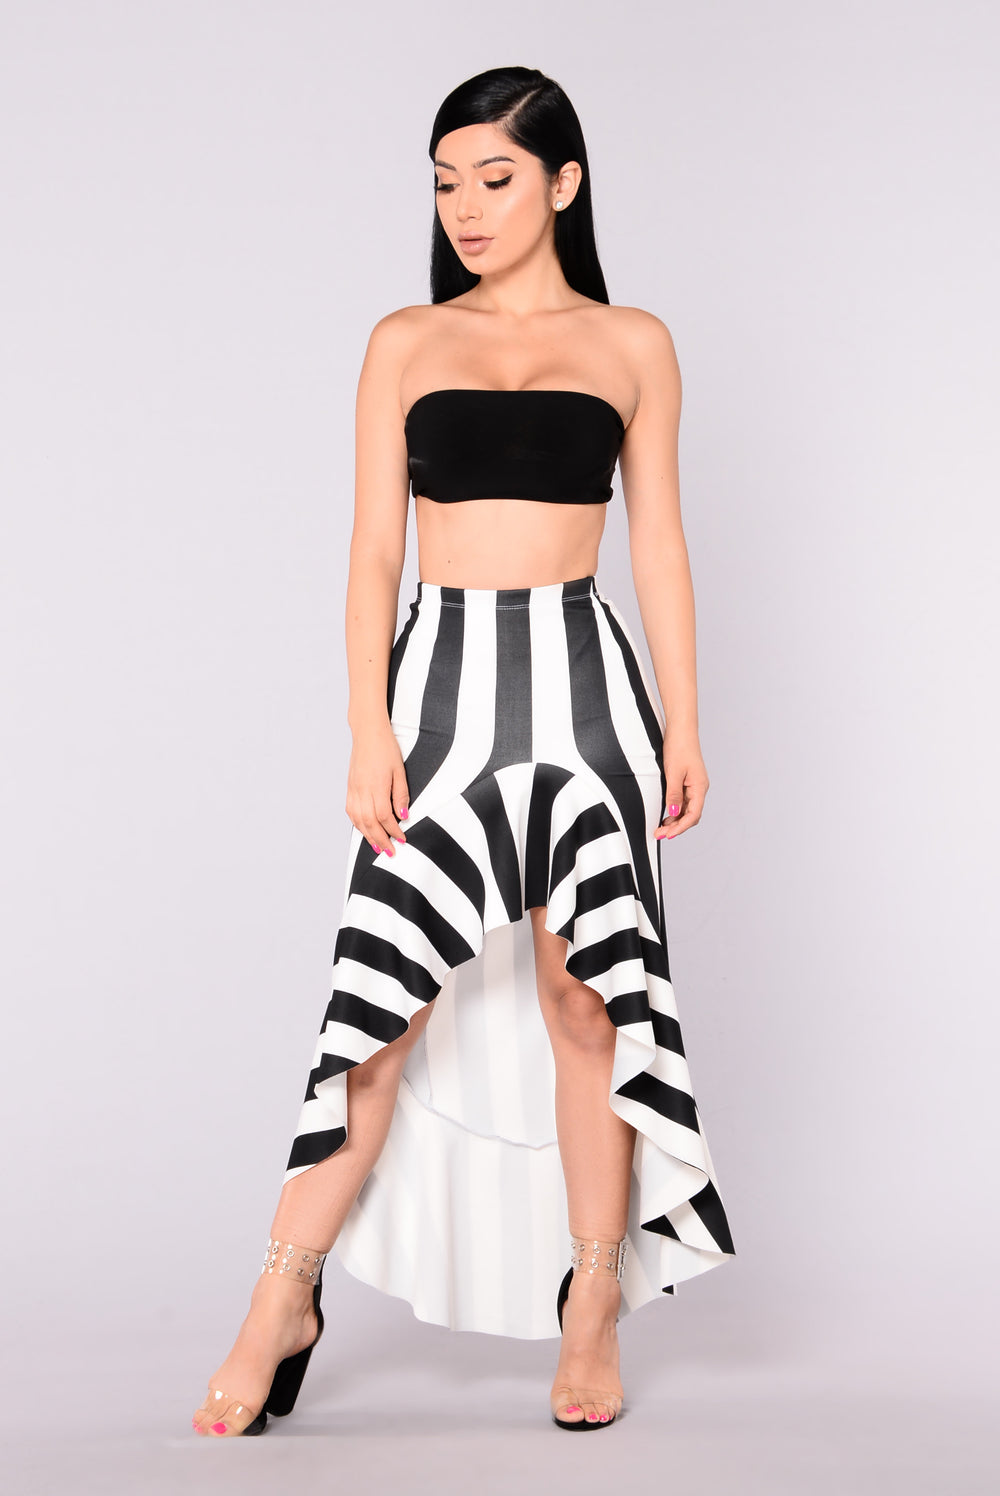 Spitfire Ruffle Skirt - Black/White